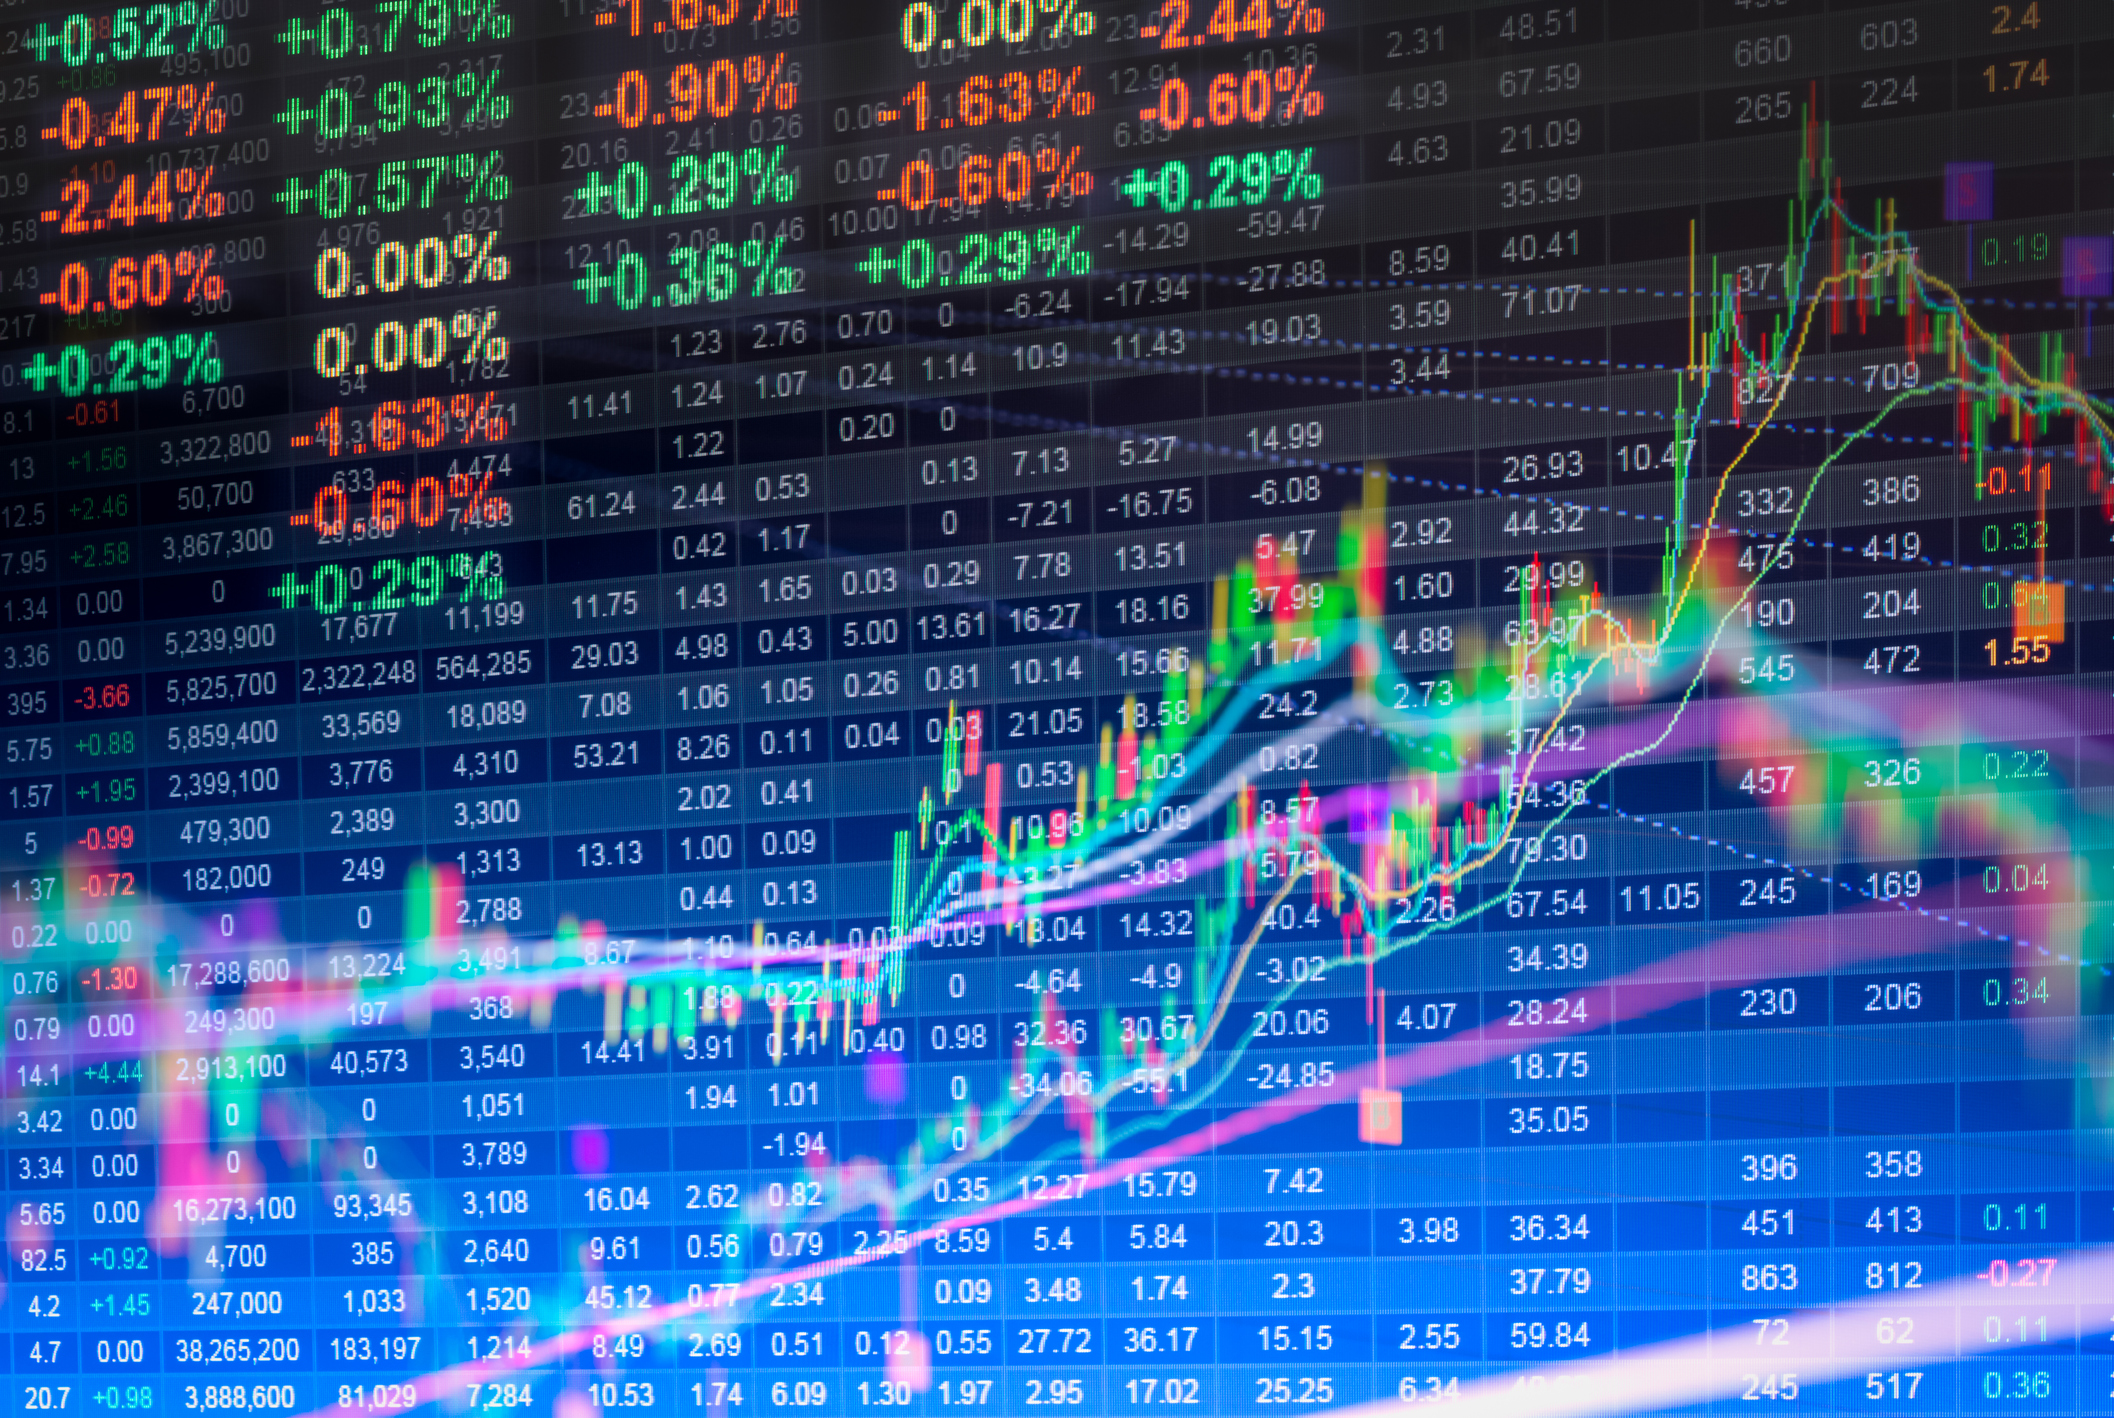 Is LPRO Stock A Buy Or Sell?